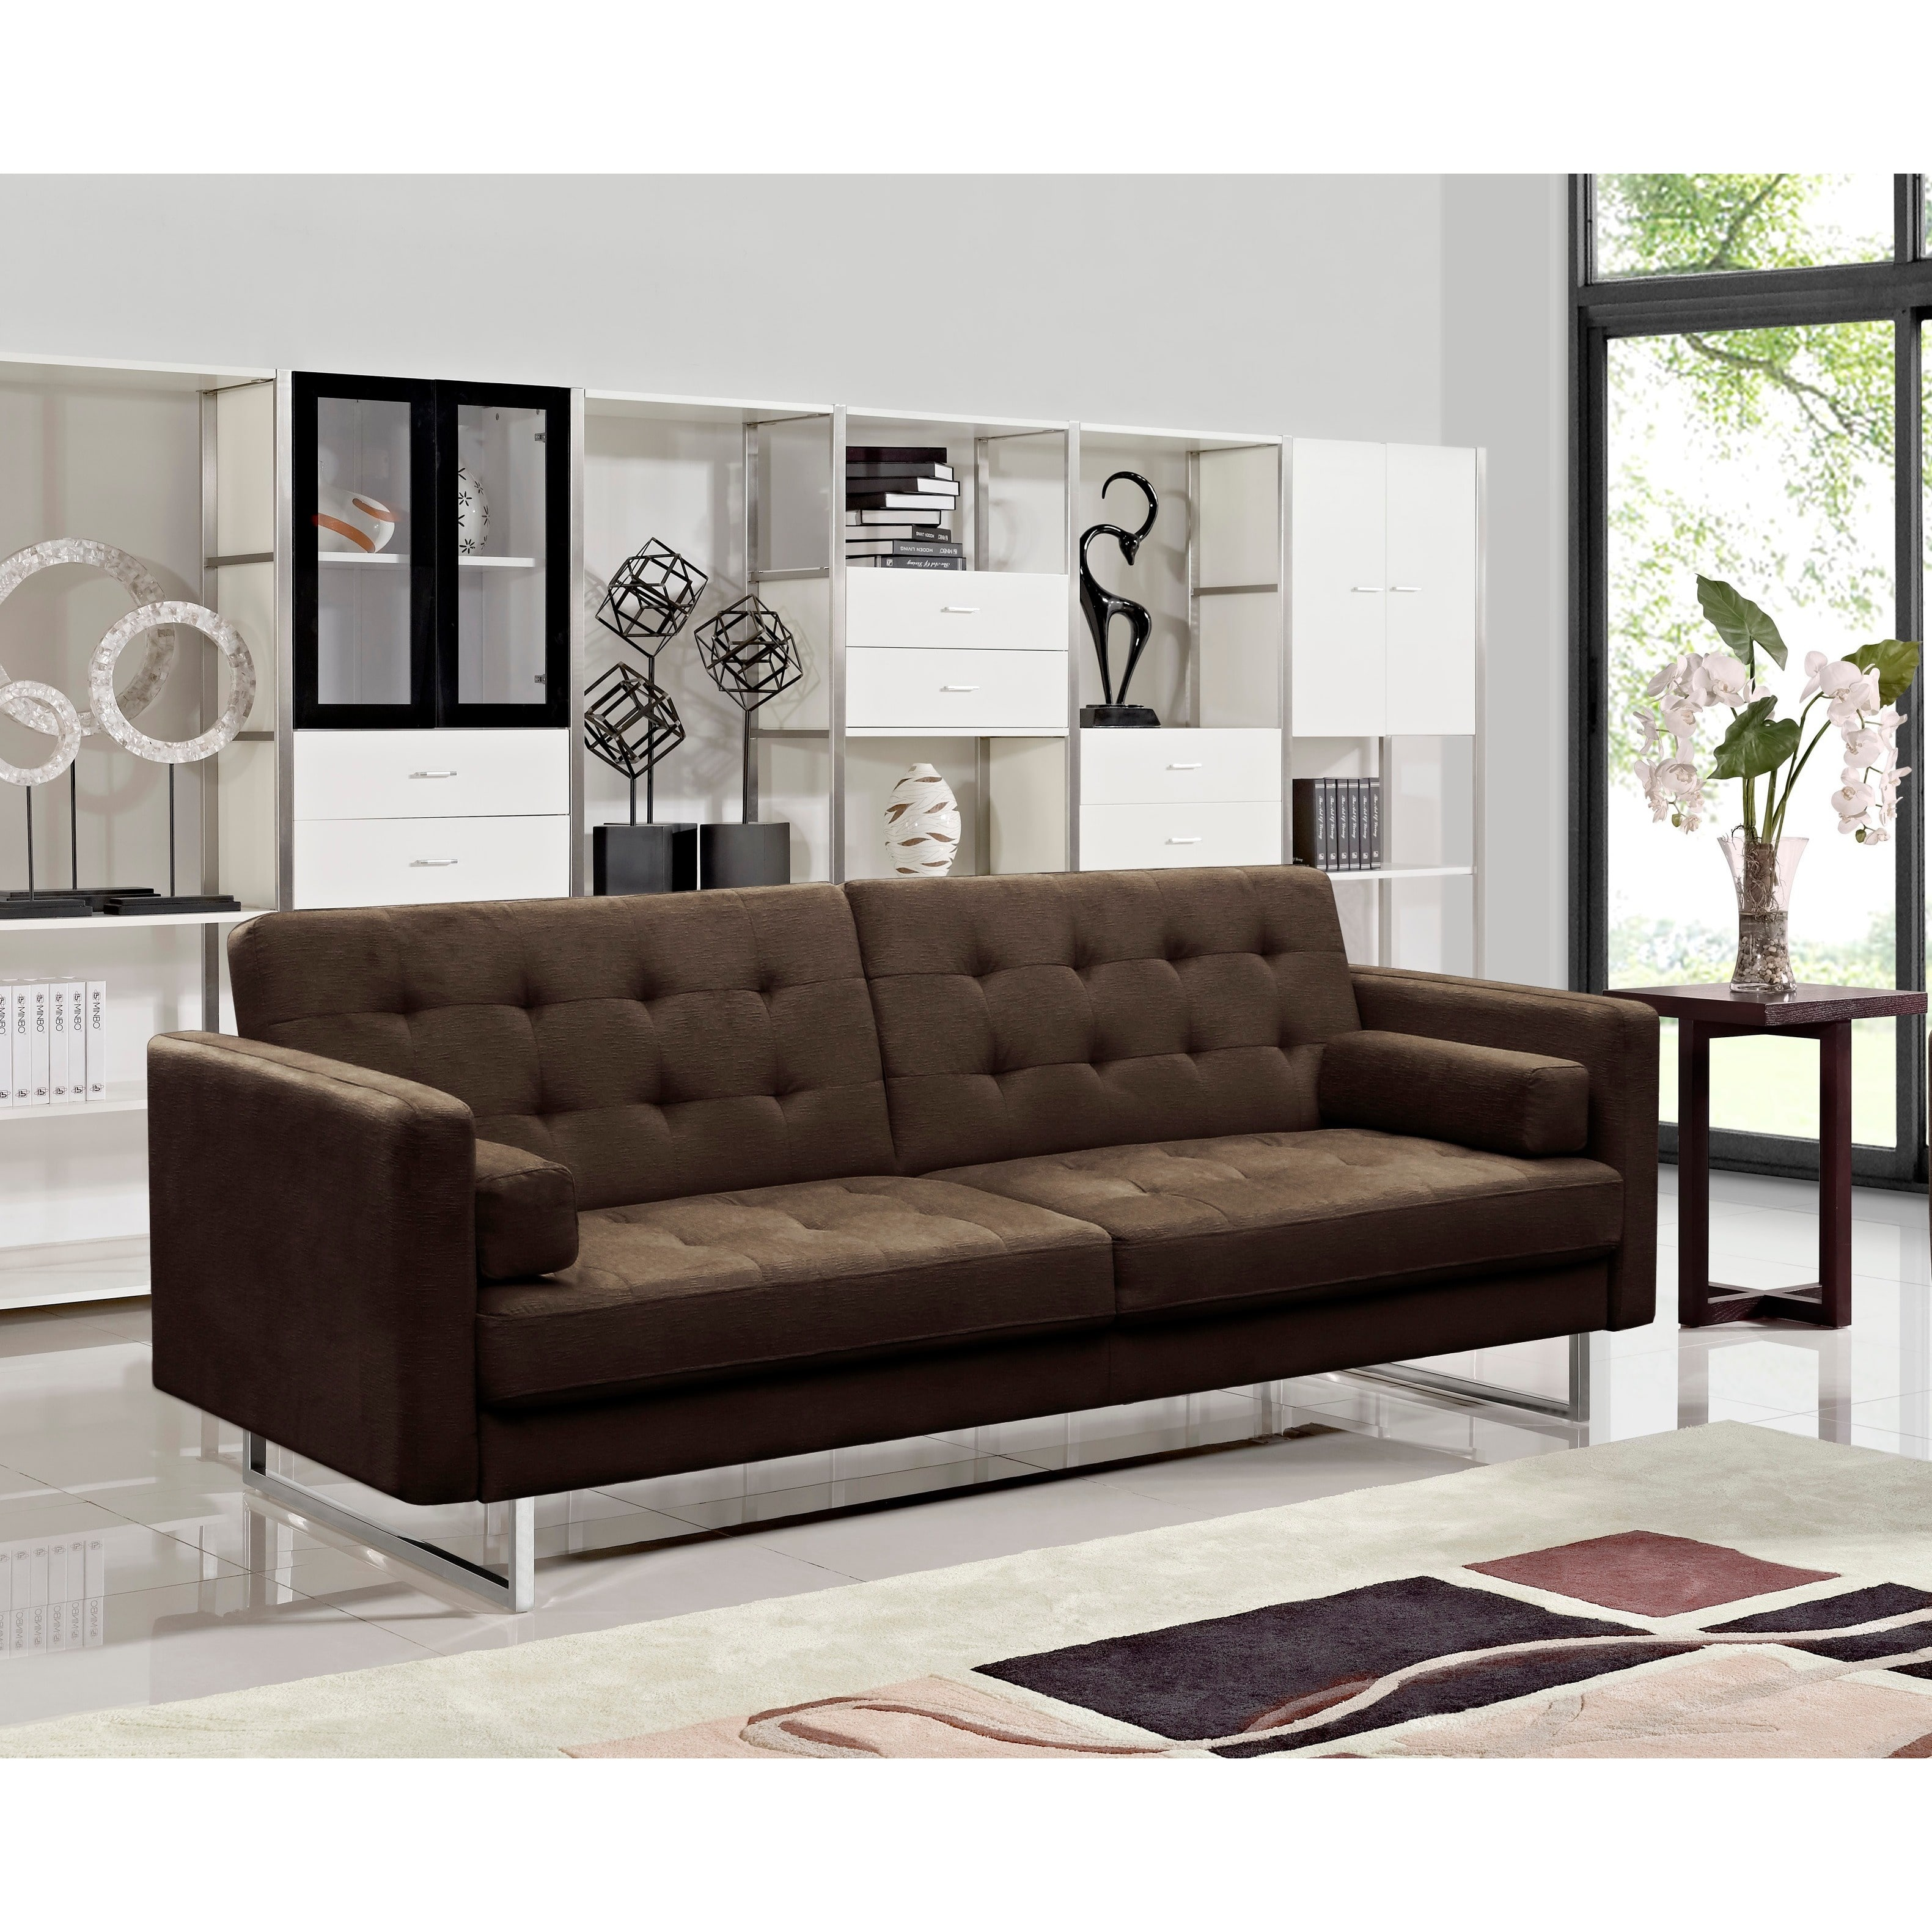 US Pride Furniture Claire Modern Fabric Upholstered Sofa Sleeper, Brown, S5055-S